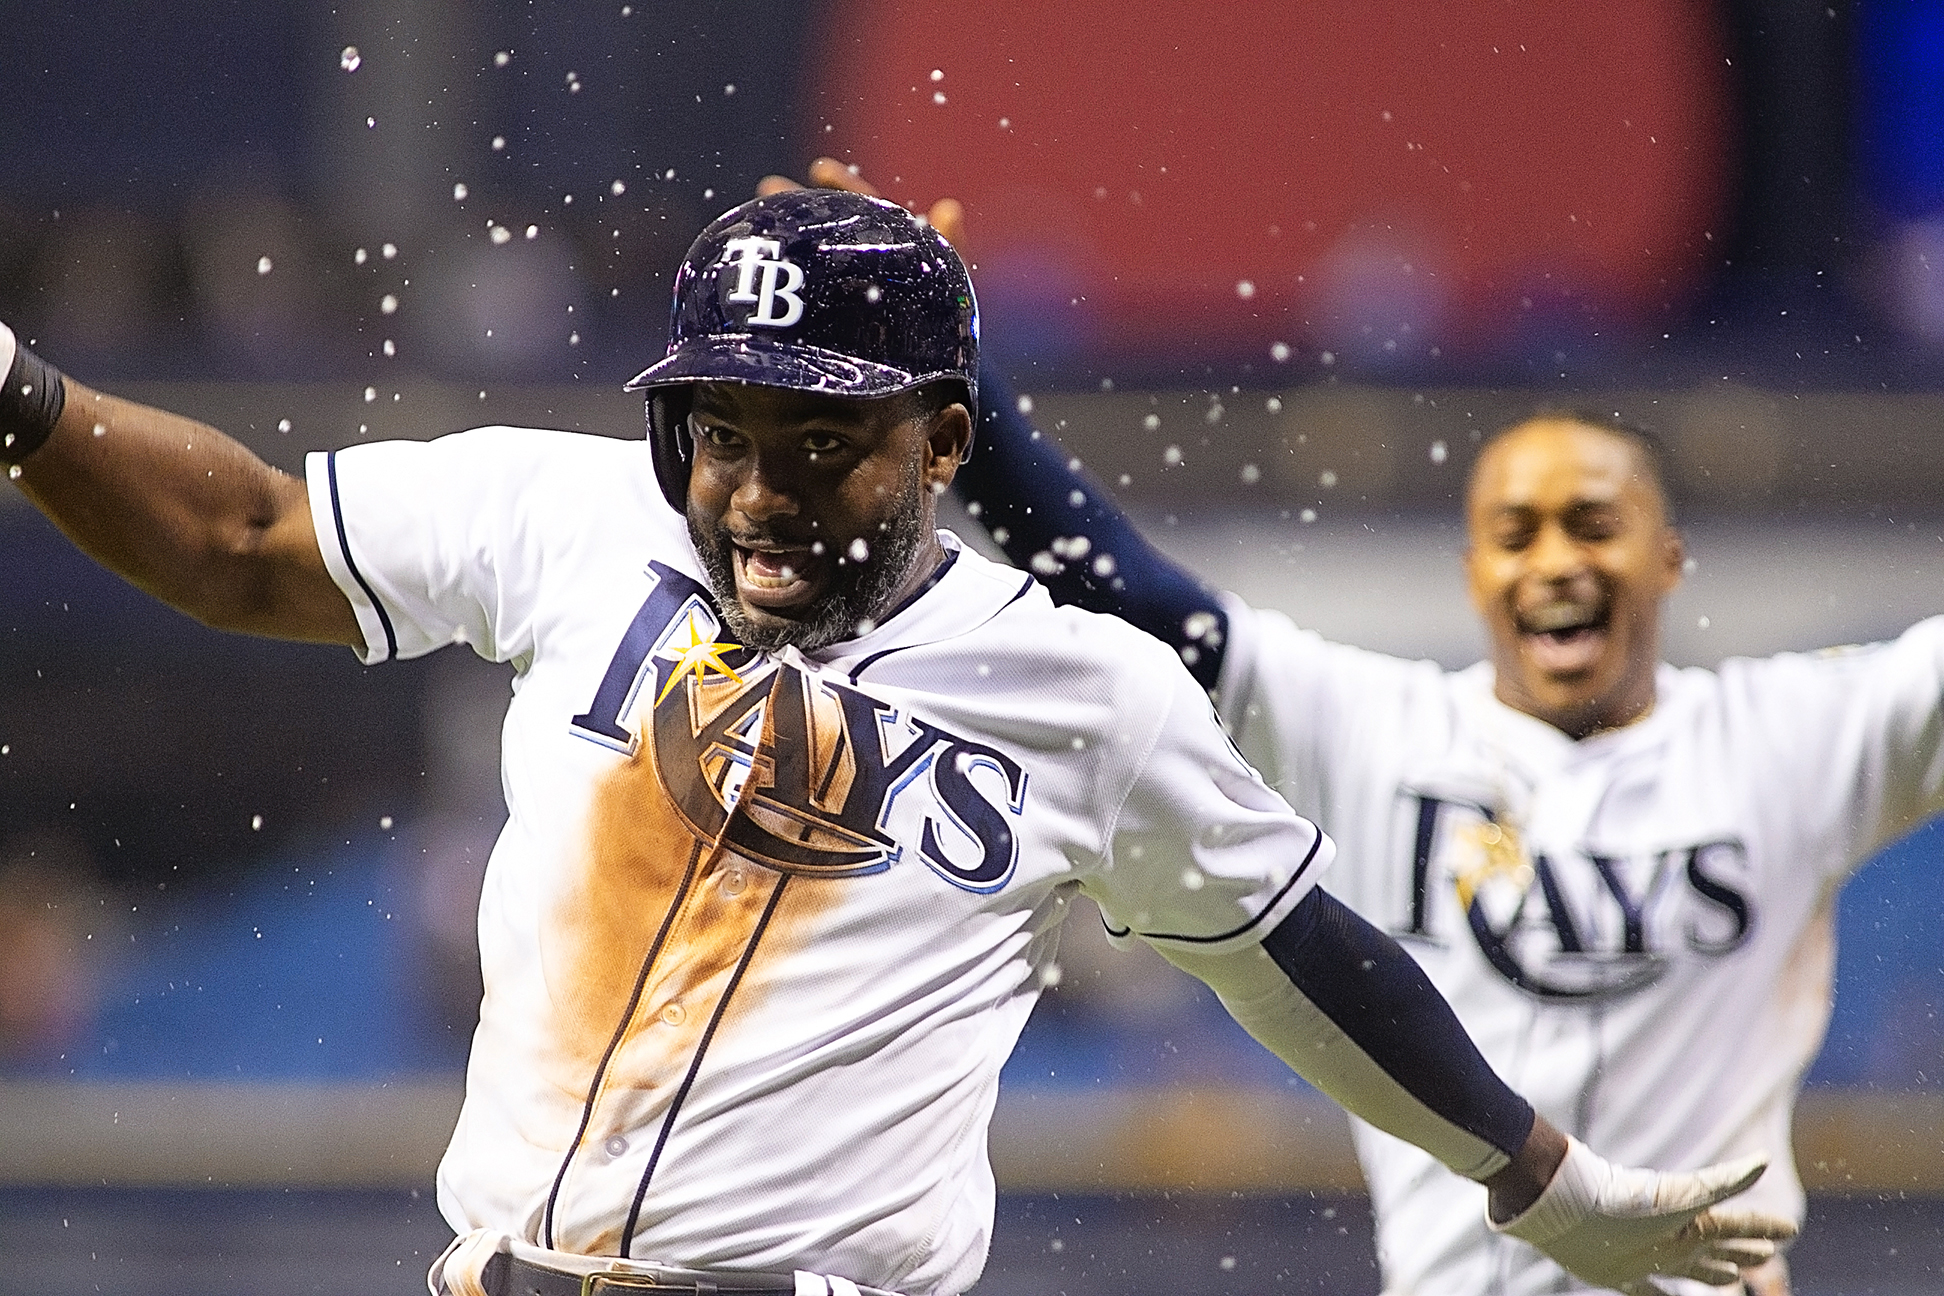 Already, Span is among the Rays' most clutch players./CARMEN MANDATO